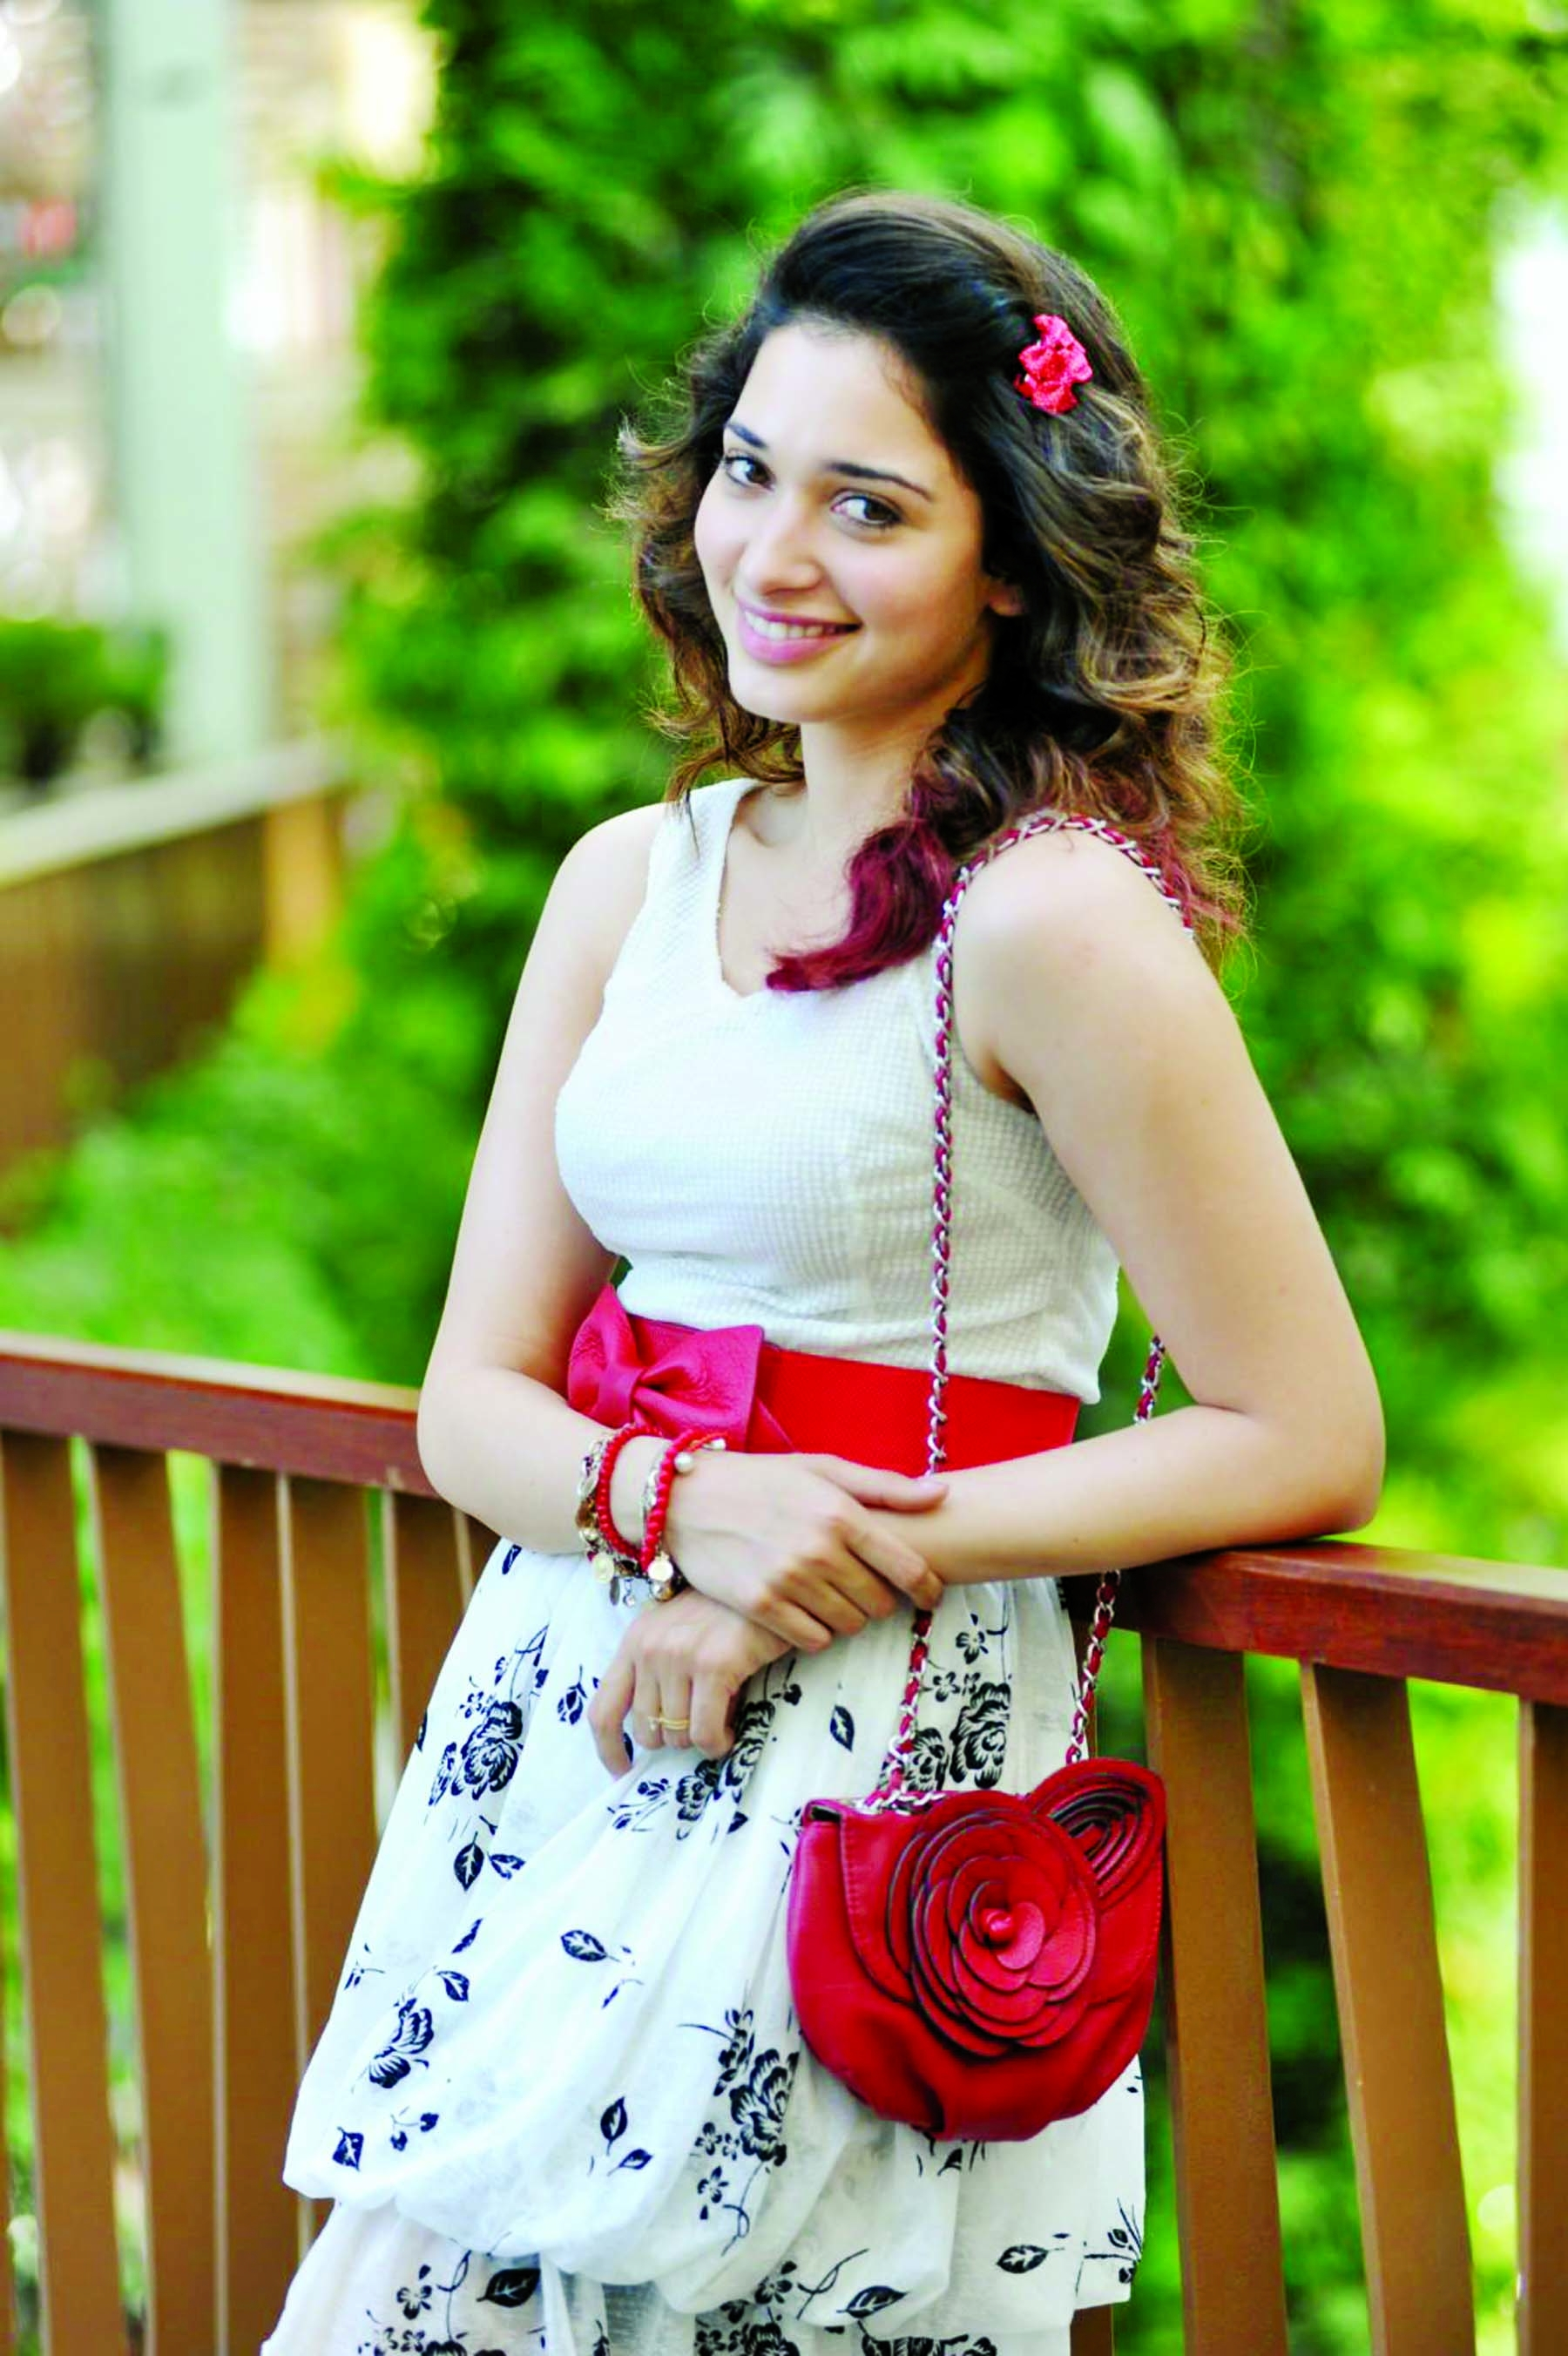 Tamannaah Bhatia expresses concern over the Covid crisis